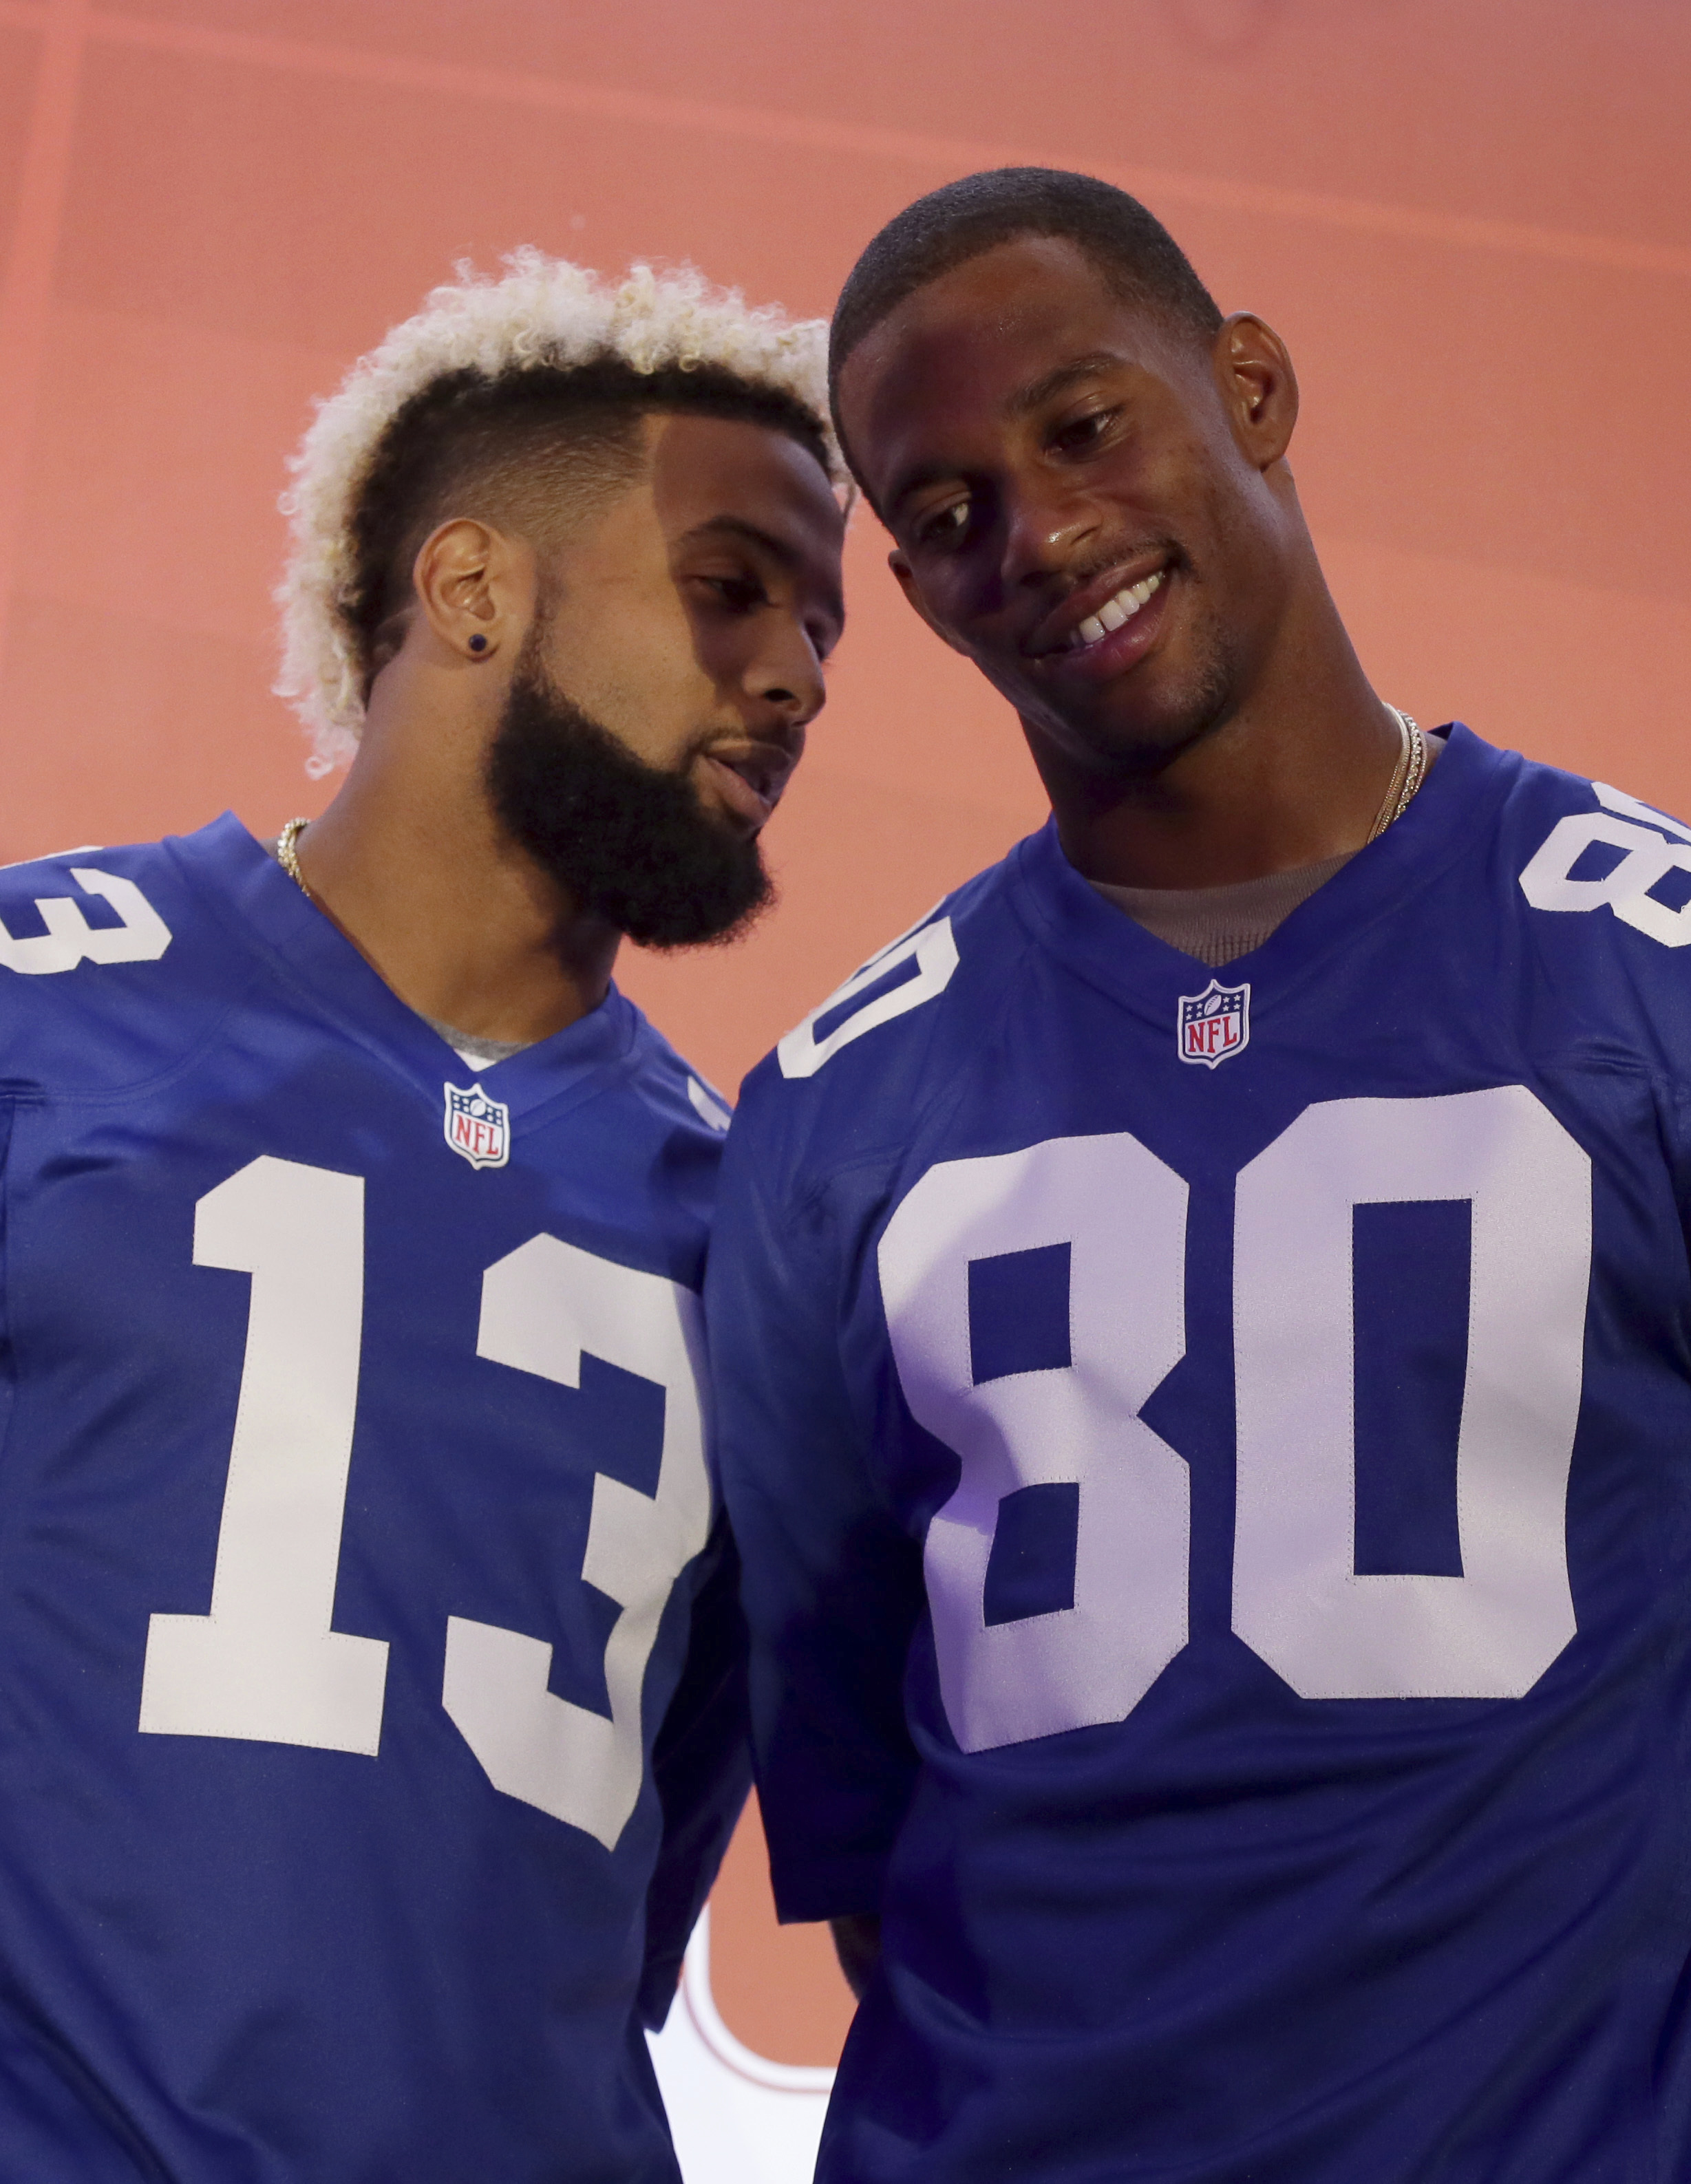 New York Giants wide receiver Victor Cruz, right, speaks with wide receiver Odell Beckham Jr on stage during an NFL Fan Rally at the NFL House in Victoria House, in London, Saturday Oct. 22, 2016. The Los Angeles Rams are due to play the New York Giants a